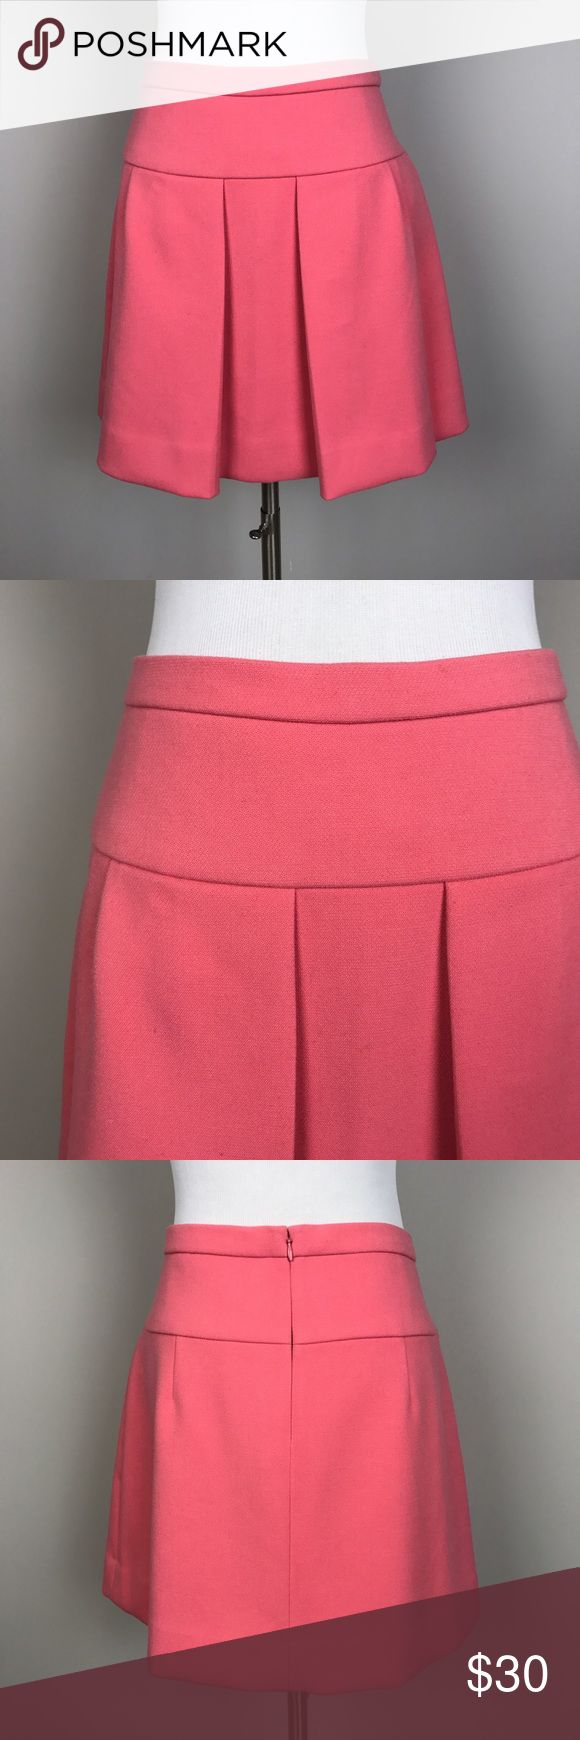 "[J Crew] Box Pleat Crepe Skirt Pink Preppy Chic 6 Heavier weight crepe skirt with elegant box pleats. Sits at waist. Hint of stretch. Zip back closure. Pink.   Waist: 15.5"" flat across Length: 16"" Condition: Excellent pre-owned condition.    *OO25 J. Crew Skirts"